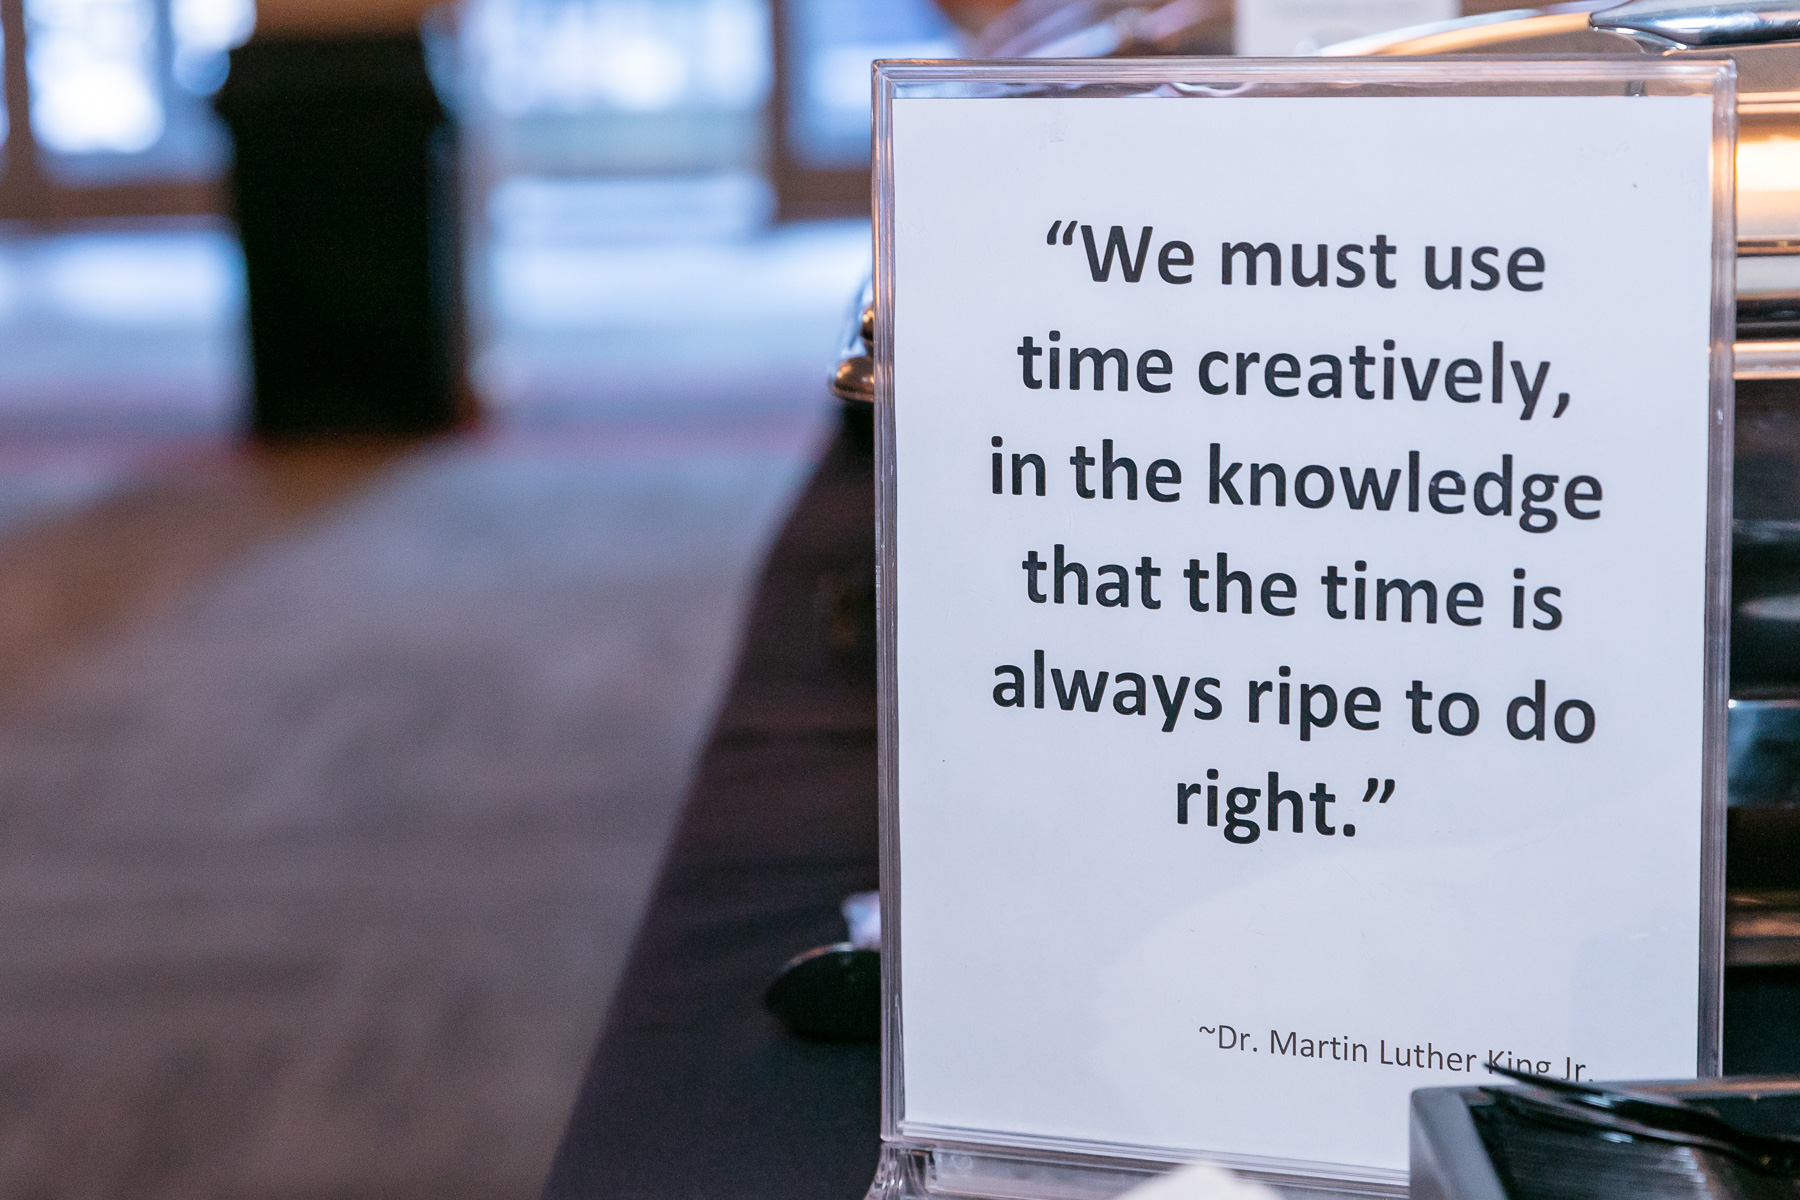 During the Rev. Dr. Martin Luther King, Jr. prayer breakfast, inspirational quotes were posted as a reminder of Dr. King's legacy and his impact on social justice. (DePaul University/Randall Spriggs)